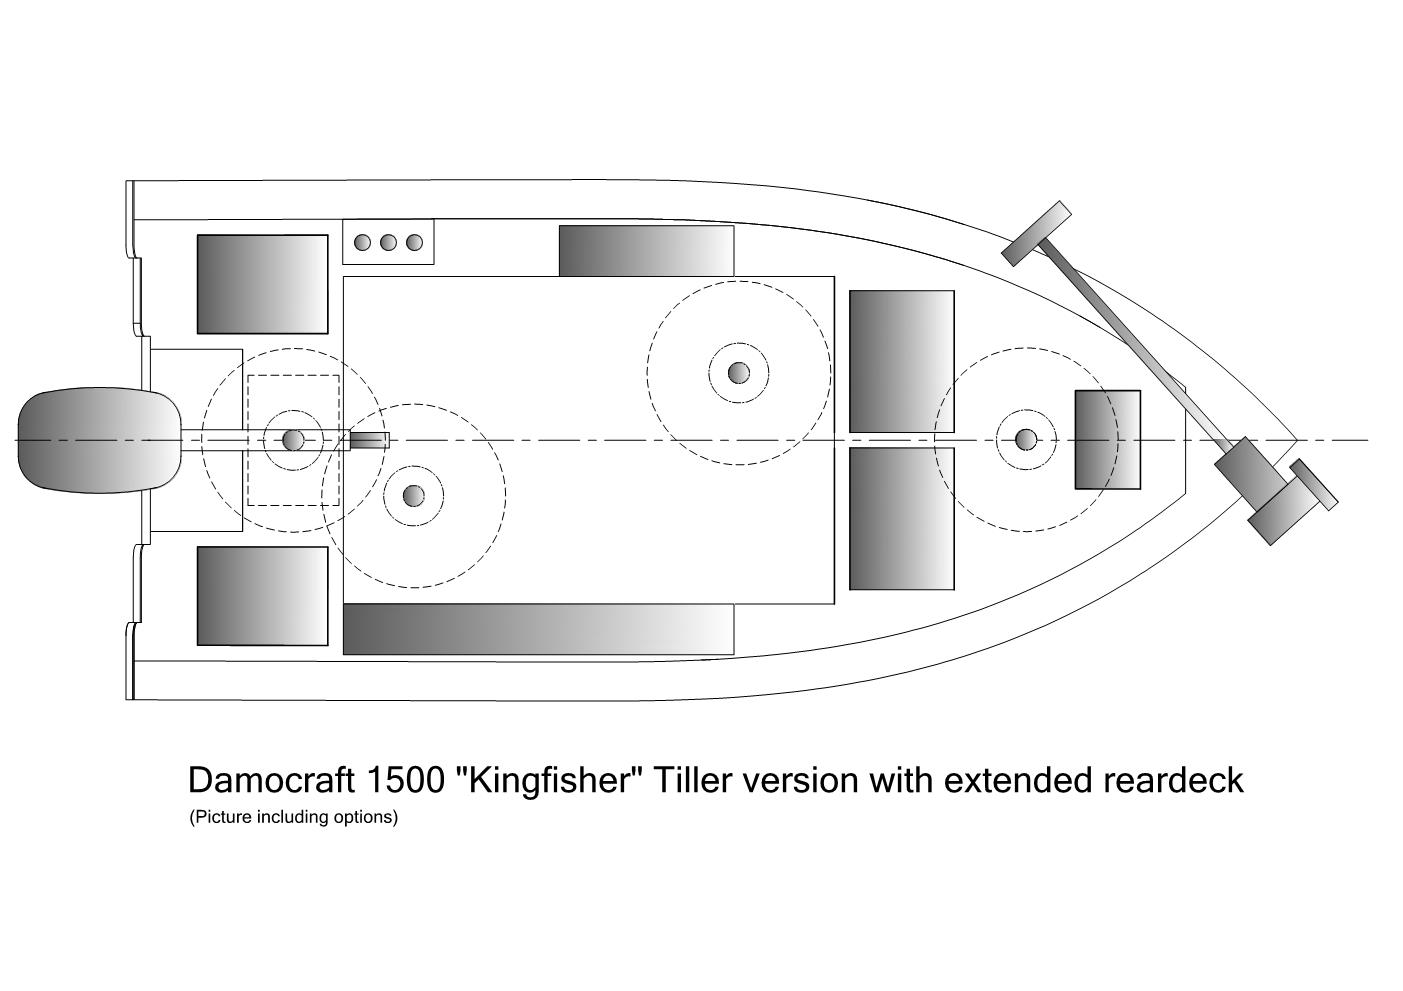 Damocraft 1500 Kingfisher Tiller version with extended reardeck